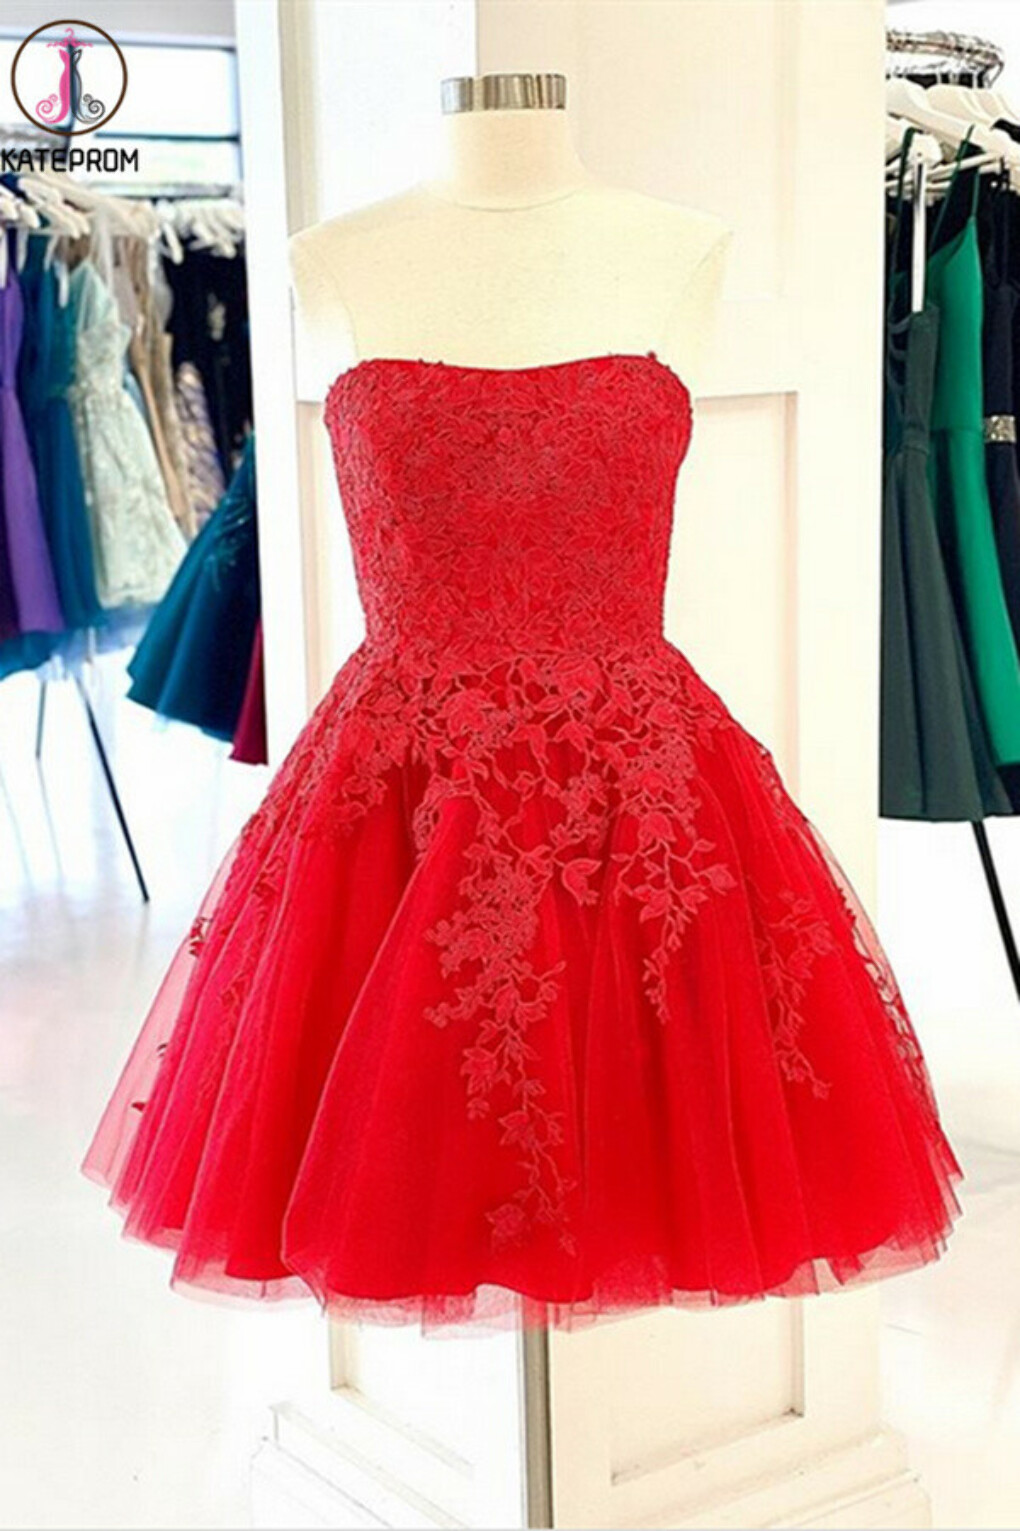 Red New 2021 Kateprom Short Prom Dresses Homecoming Dresses online KPH0534